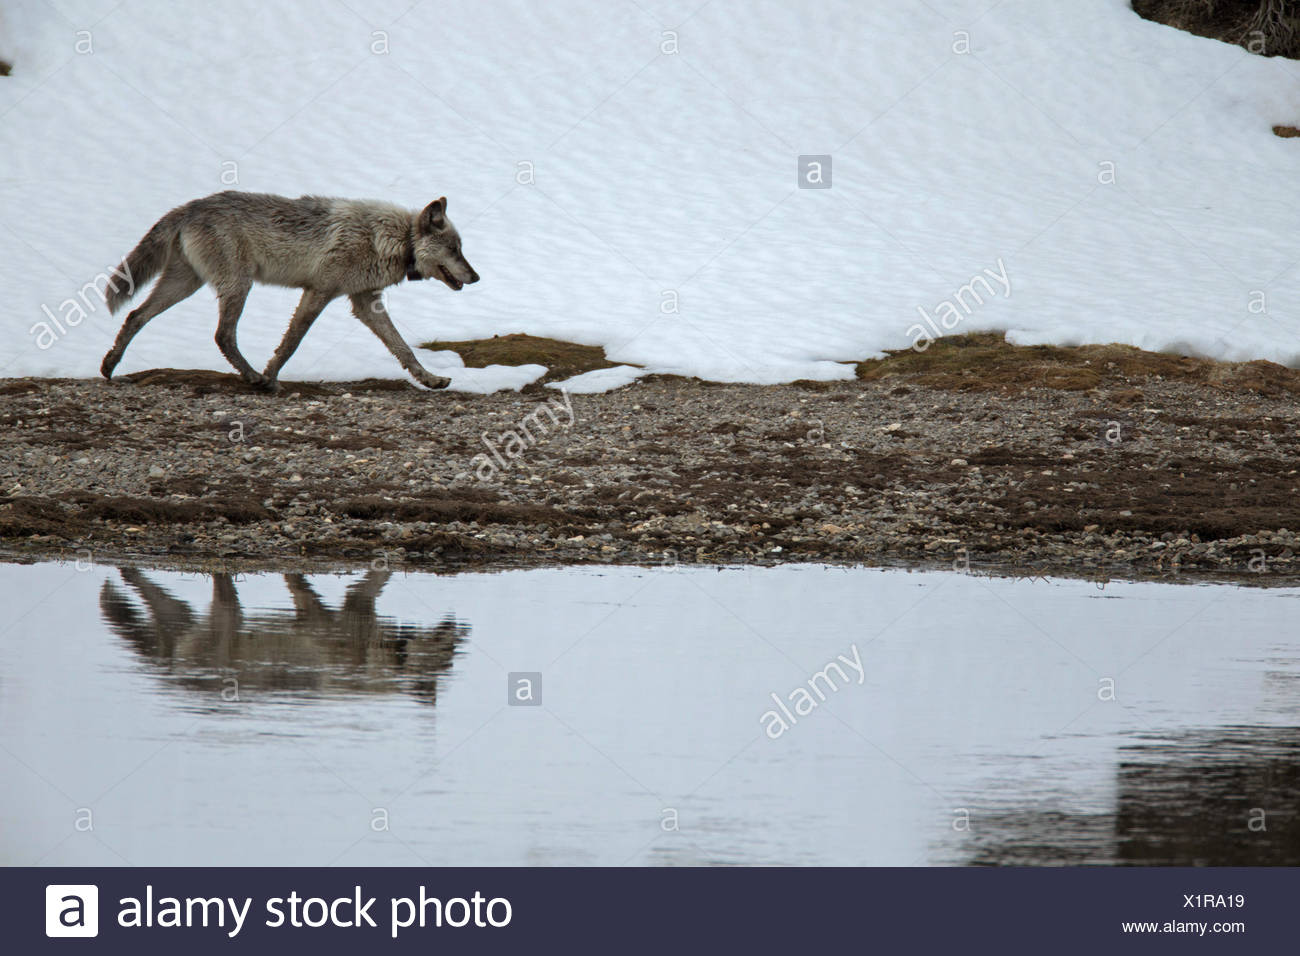 A gray wolf, Canis lupus, wearing a tracking collar, walks along the Yellowstone River. - Stock Image